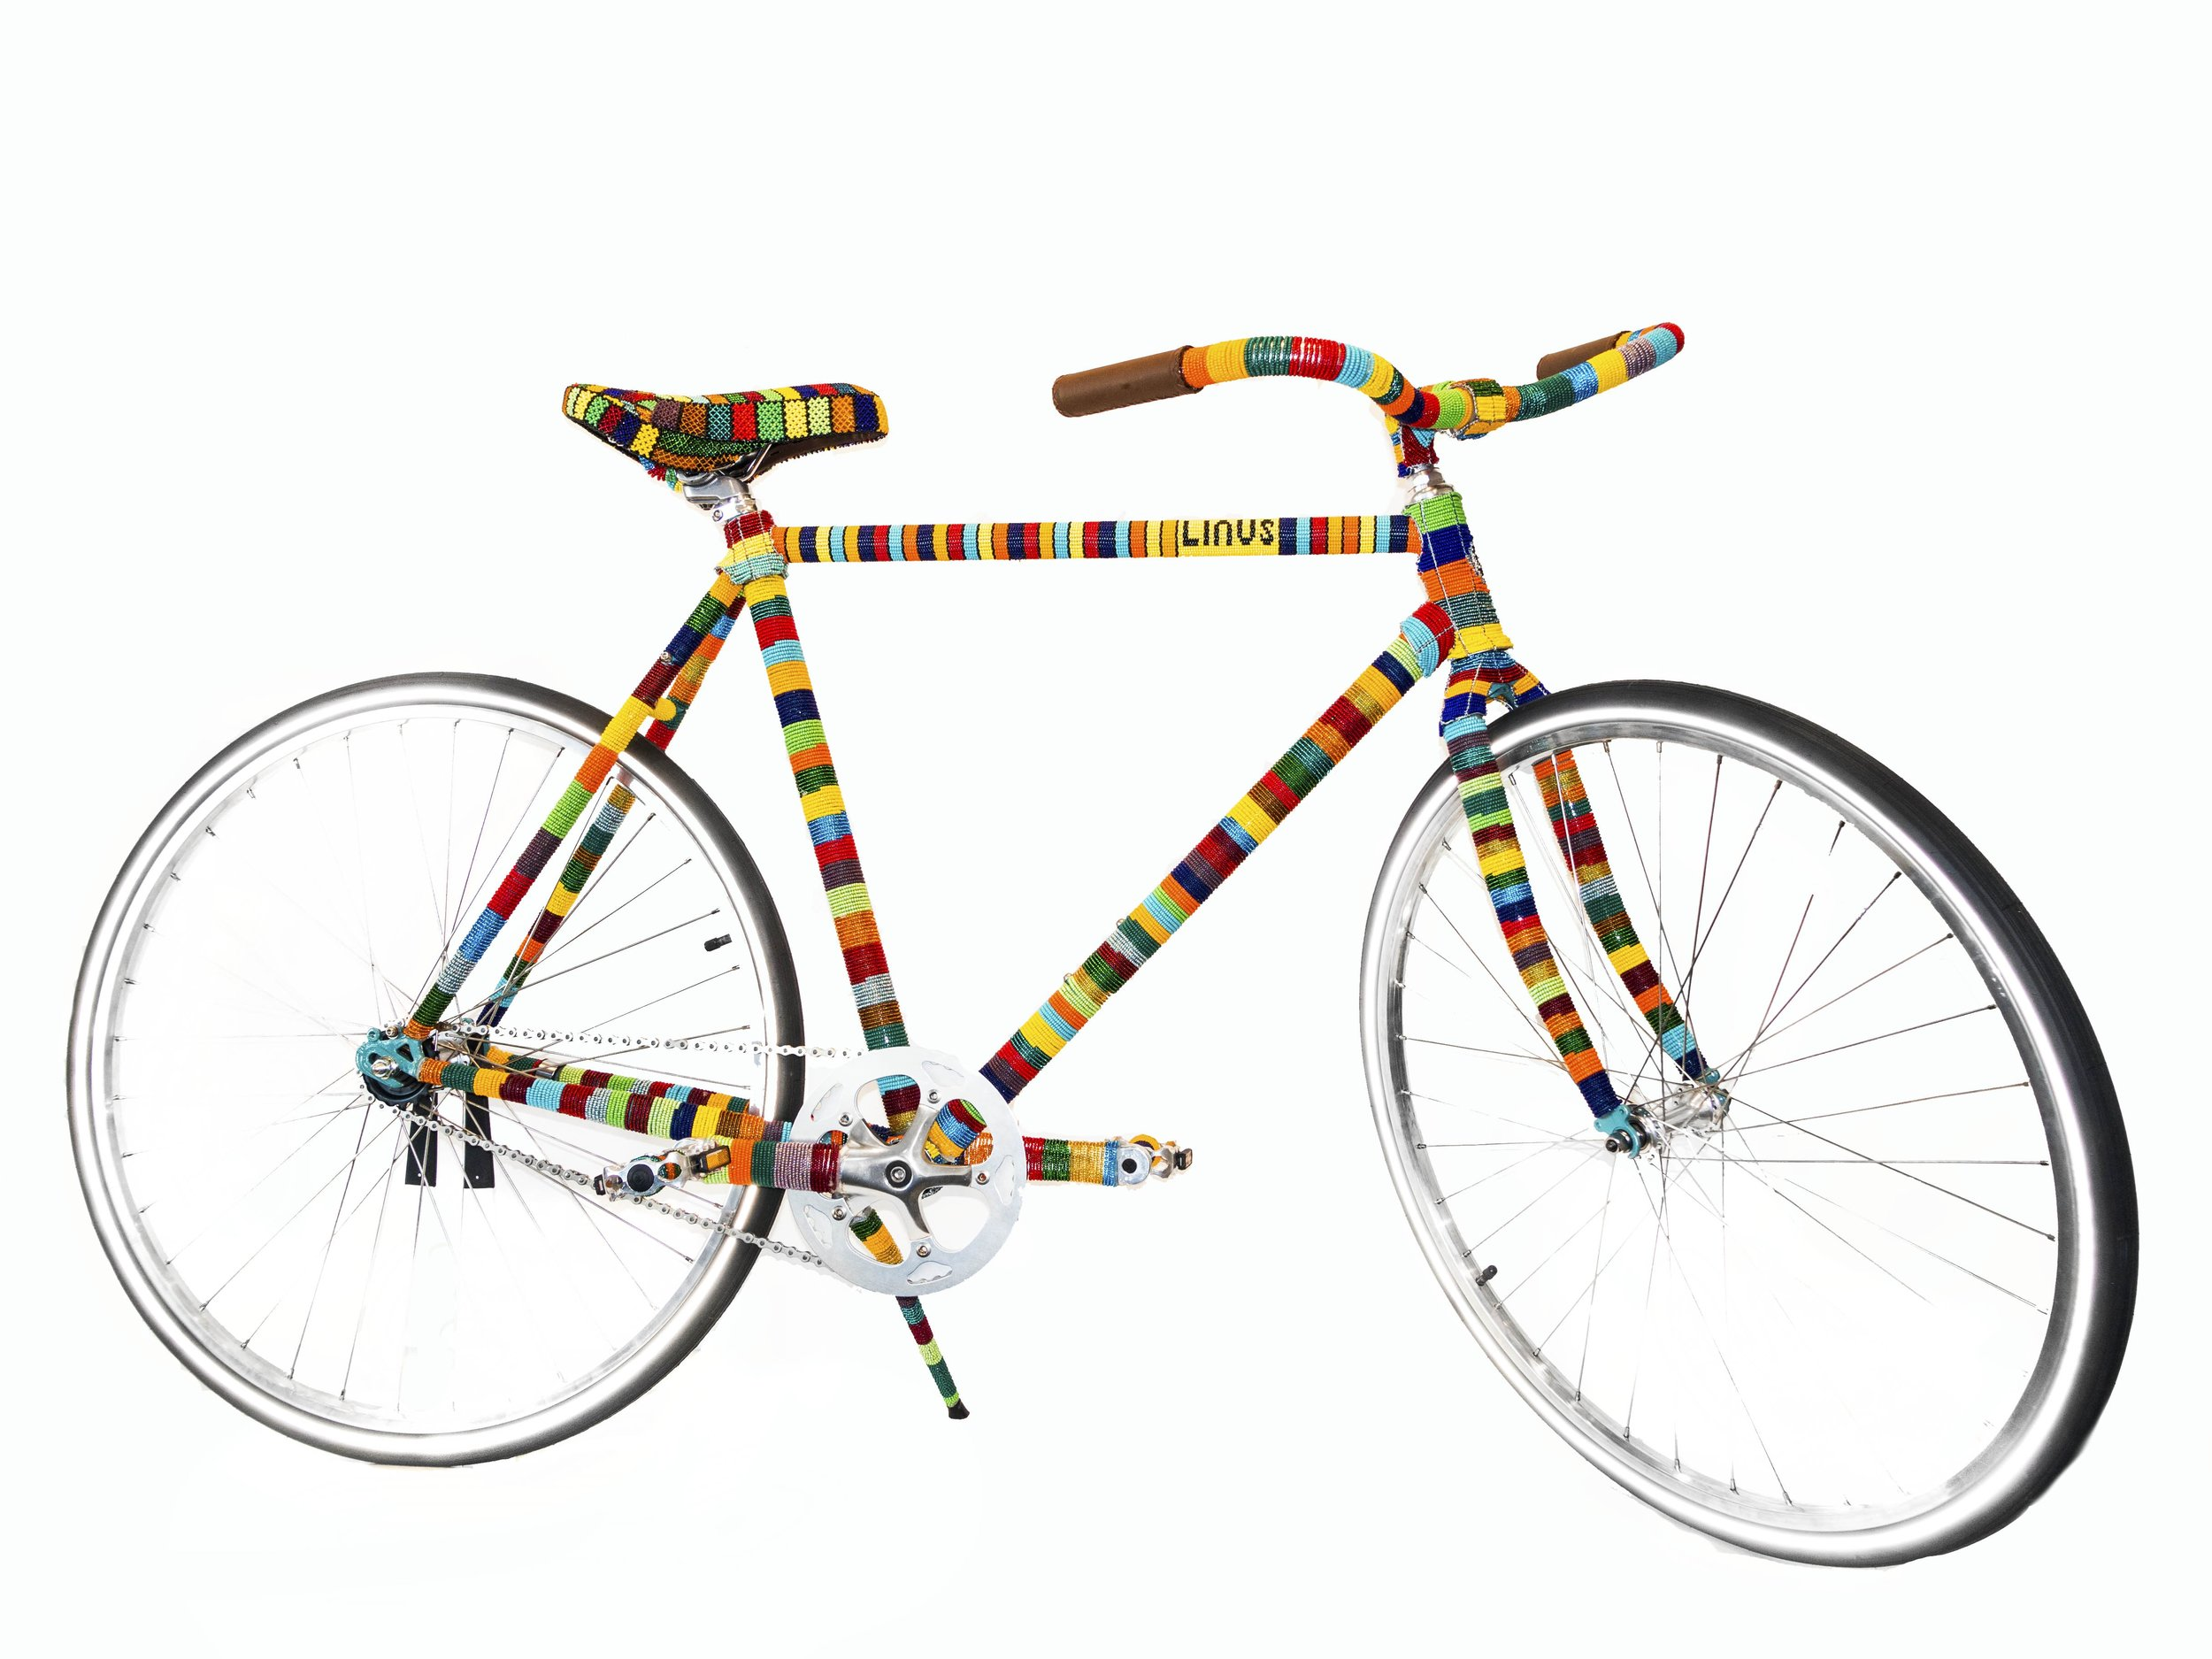 Ralph Ziman   AfriKa_47 X Linus , 2019 Beads on a Linus bicycle 40 x 70 x 24 inches  Value $12,000 - SOLD